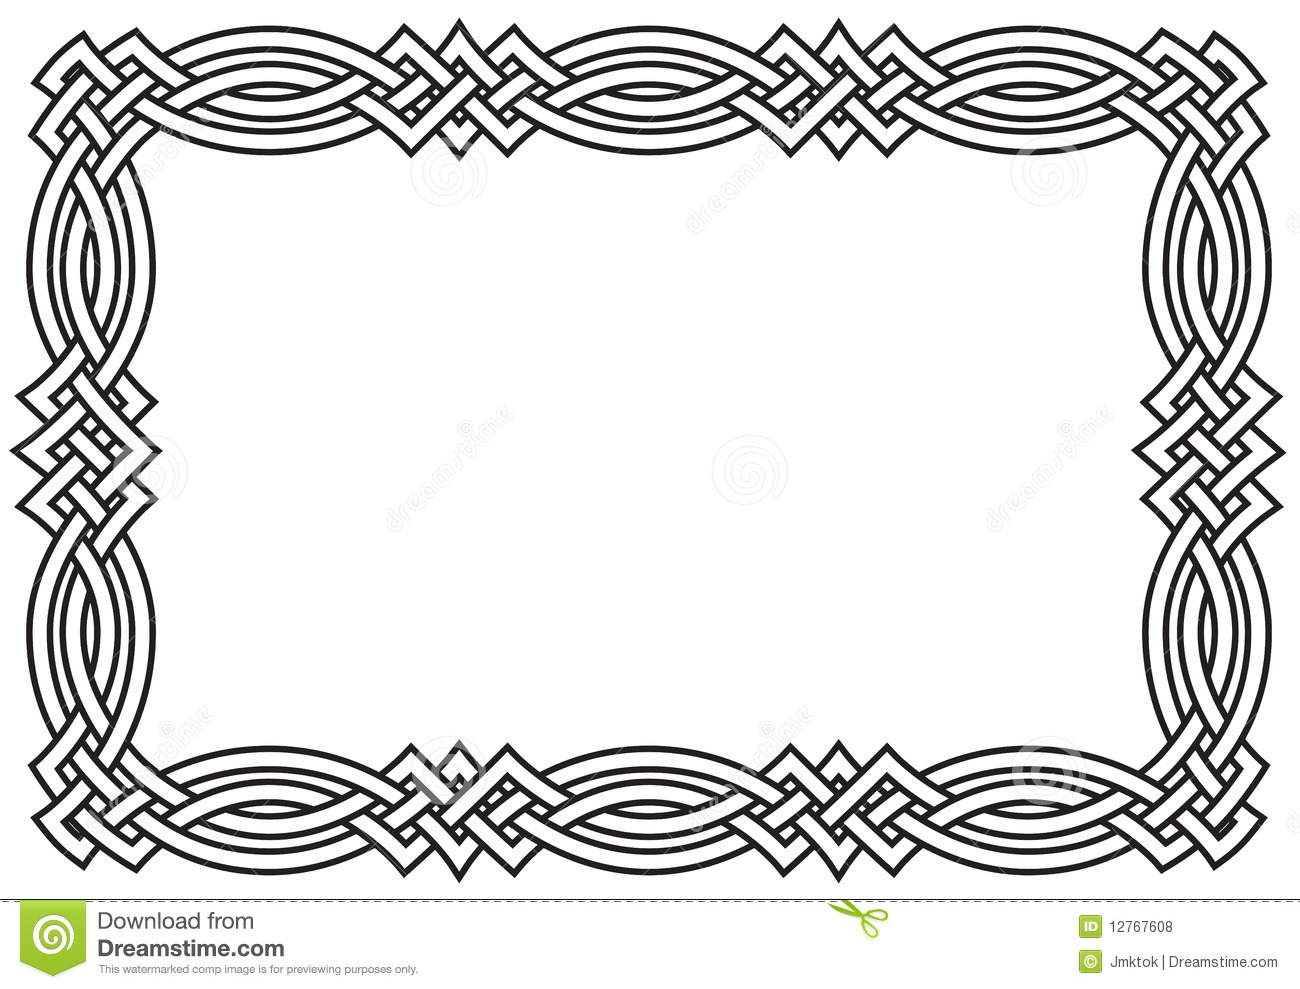 10 Celtic Knot Simple Border Vector Images